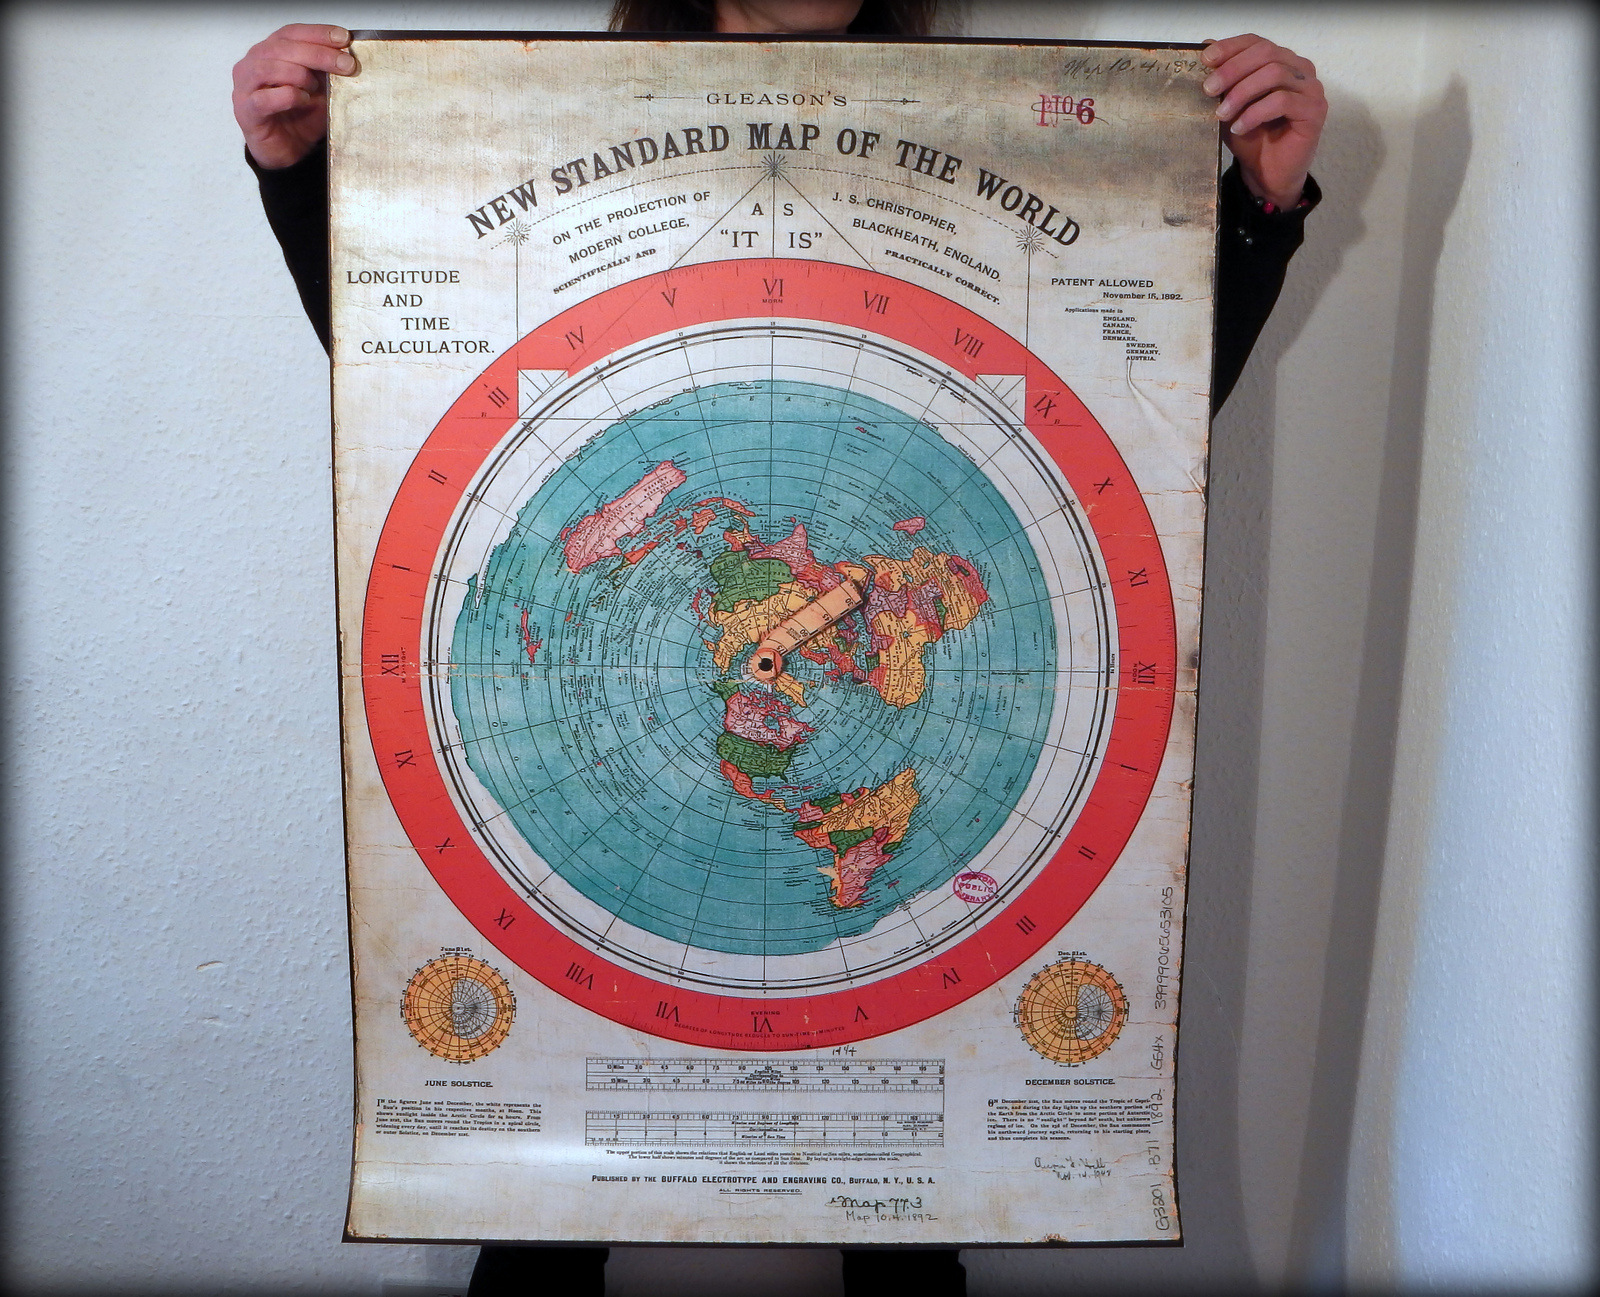 Gleason's New Standard Map Of The World 1892